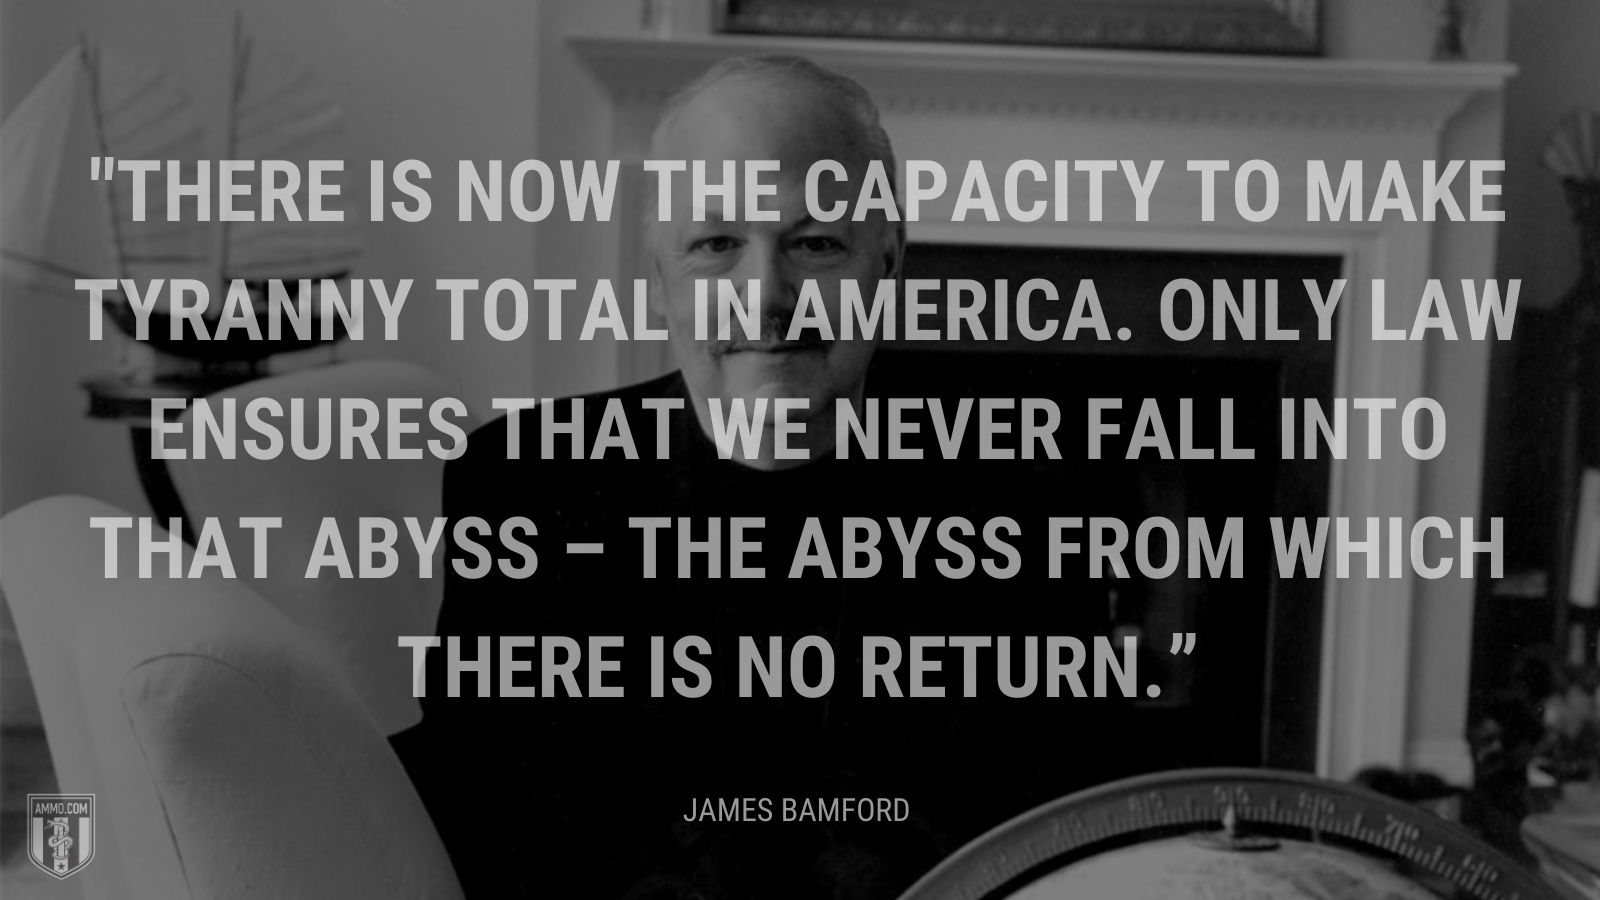 """""""There is now the capacity to make tyranny total in America. Only law ensures that we never fall into that abyss – the abyss from which there is no return."""" - James Bamford"""